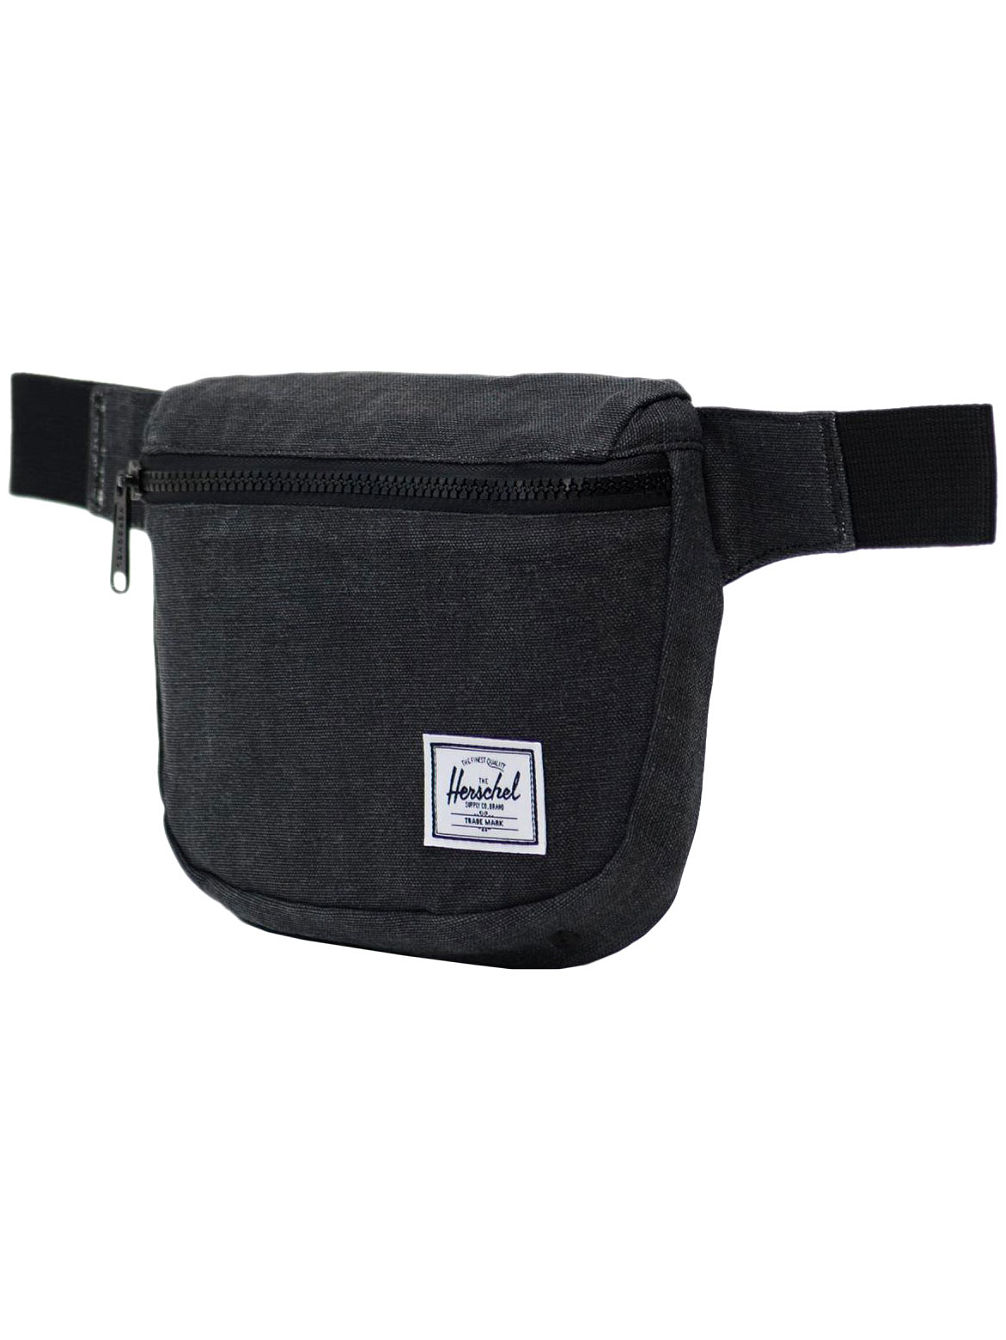 Fifteen Cotton Casuals Hip Bag